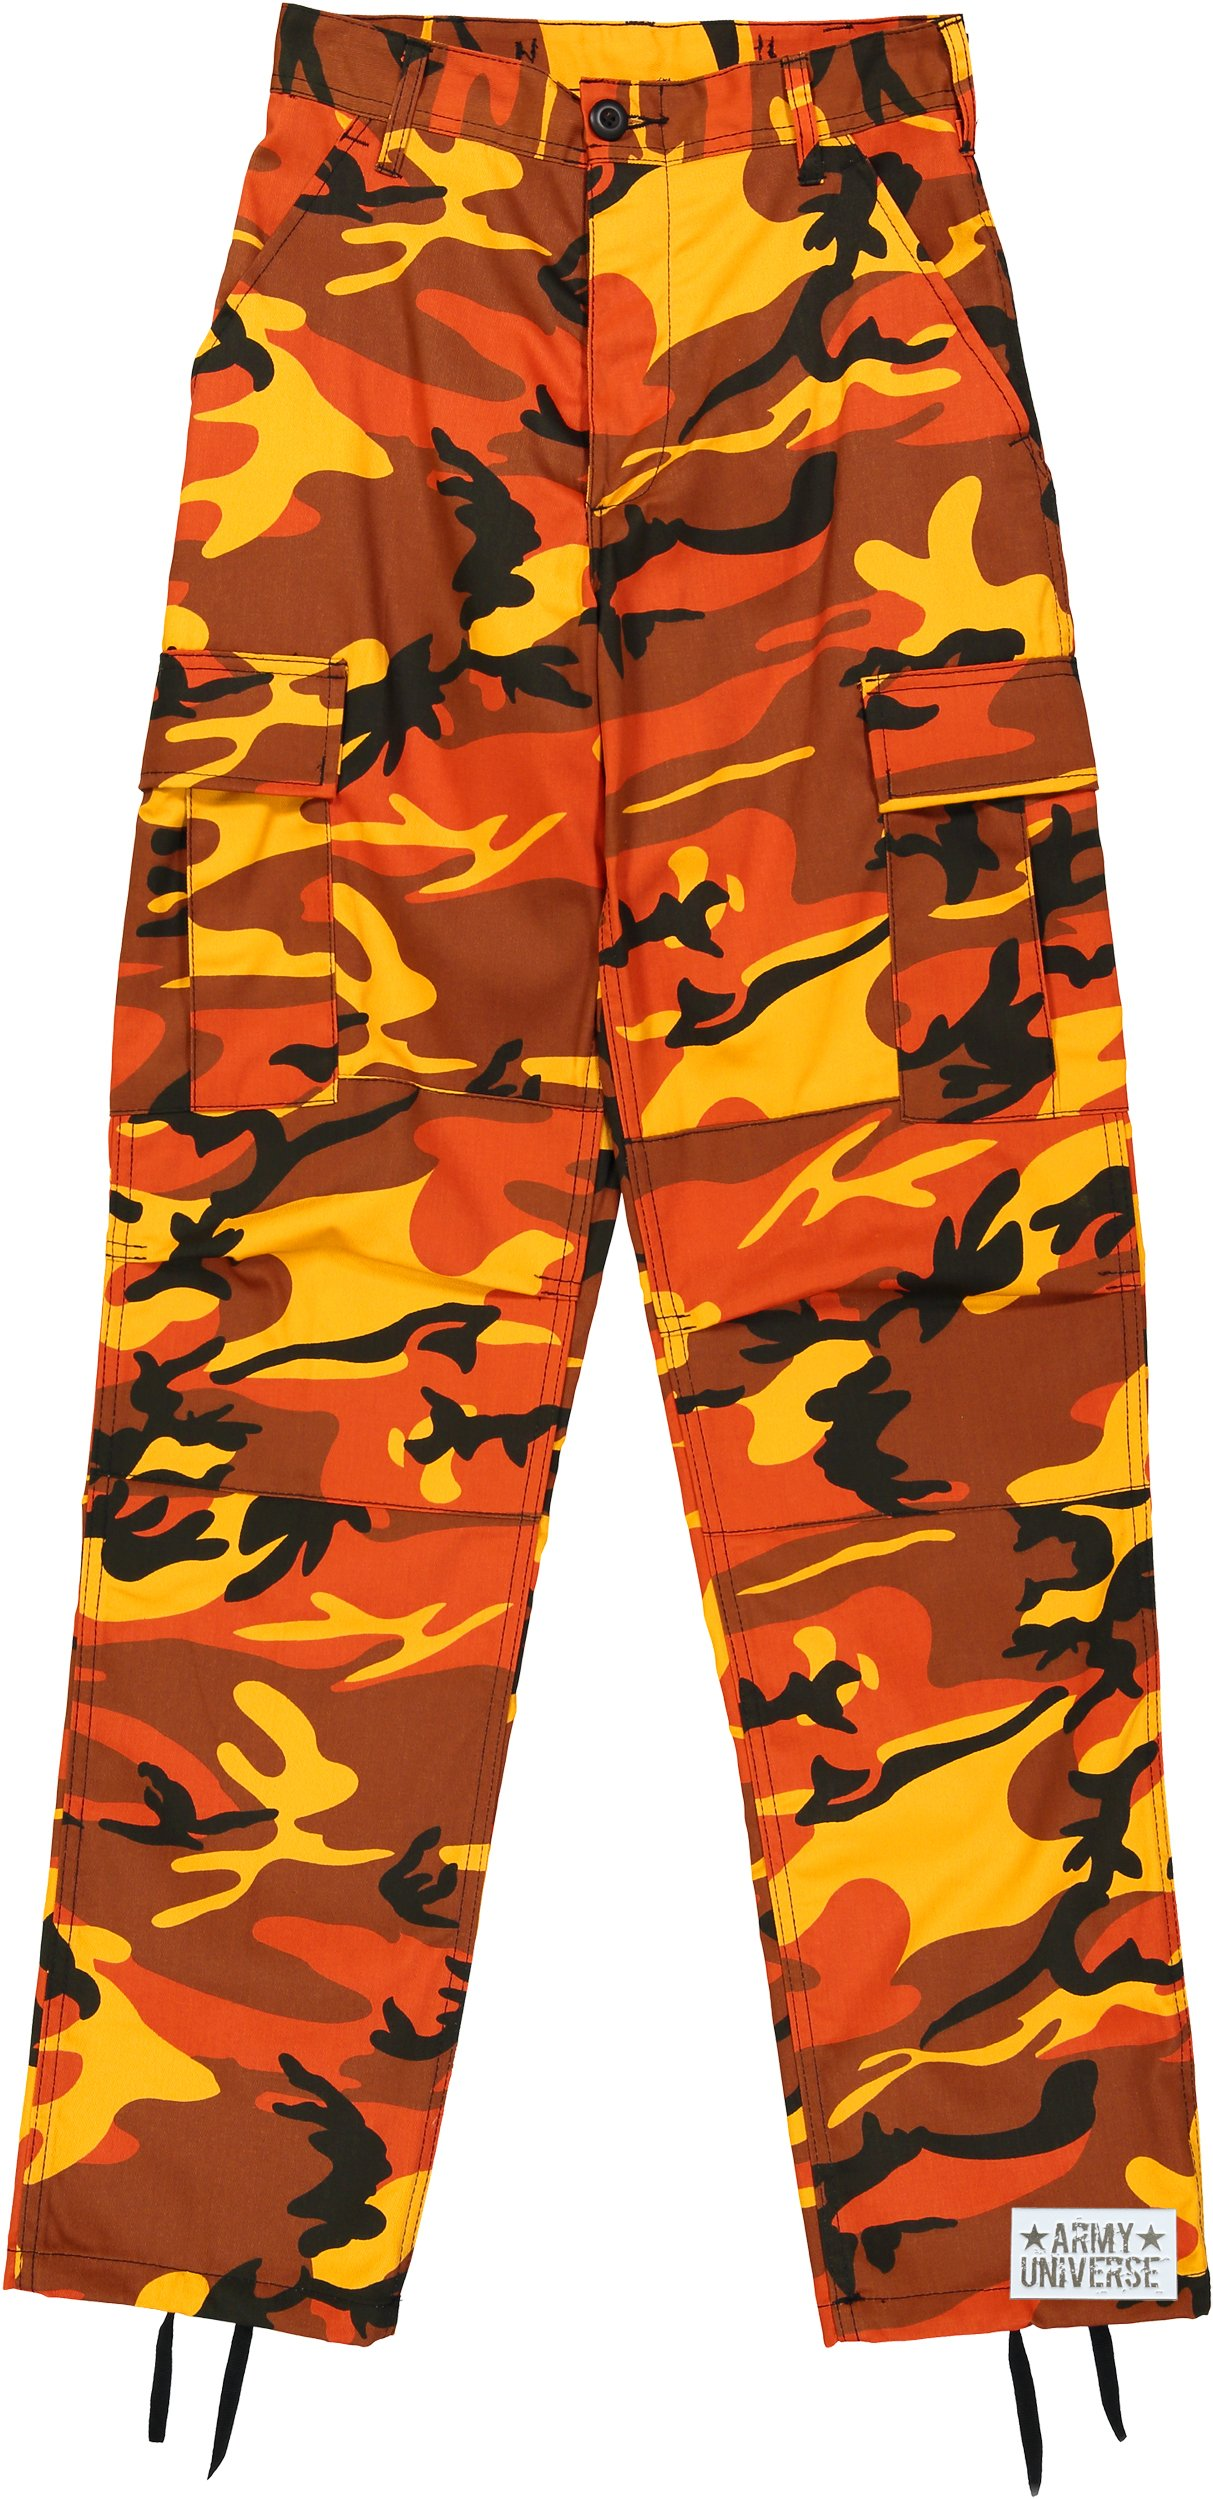 Army Universe Orange Camouflage Poly Cotton Cargo BDU Pants Camo Military Fatigues Pin (Large Regular W 35-39 - I 29.5-32.5)